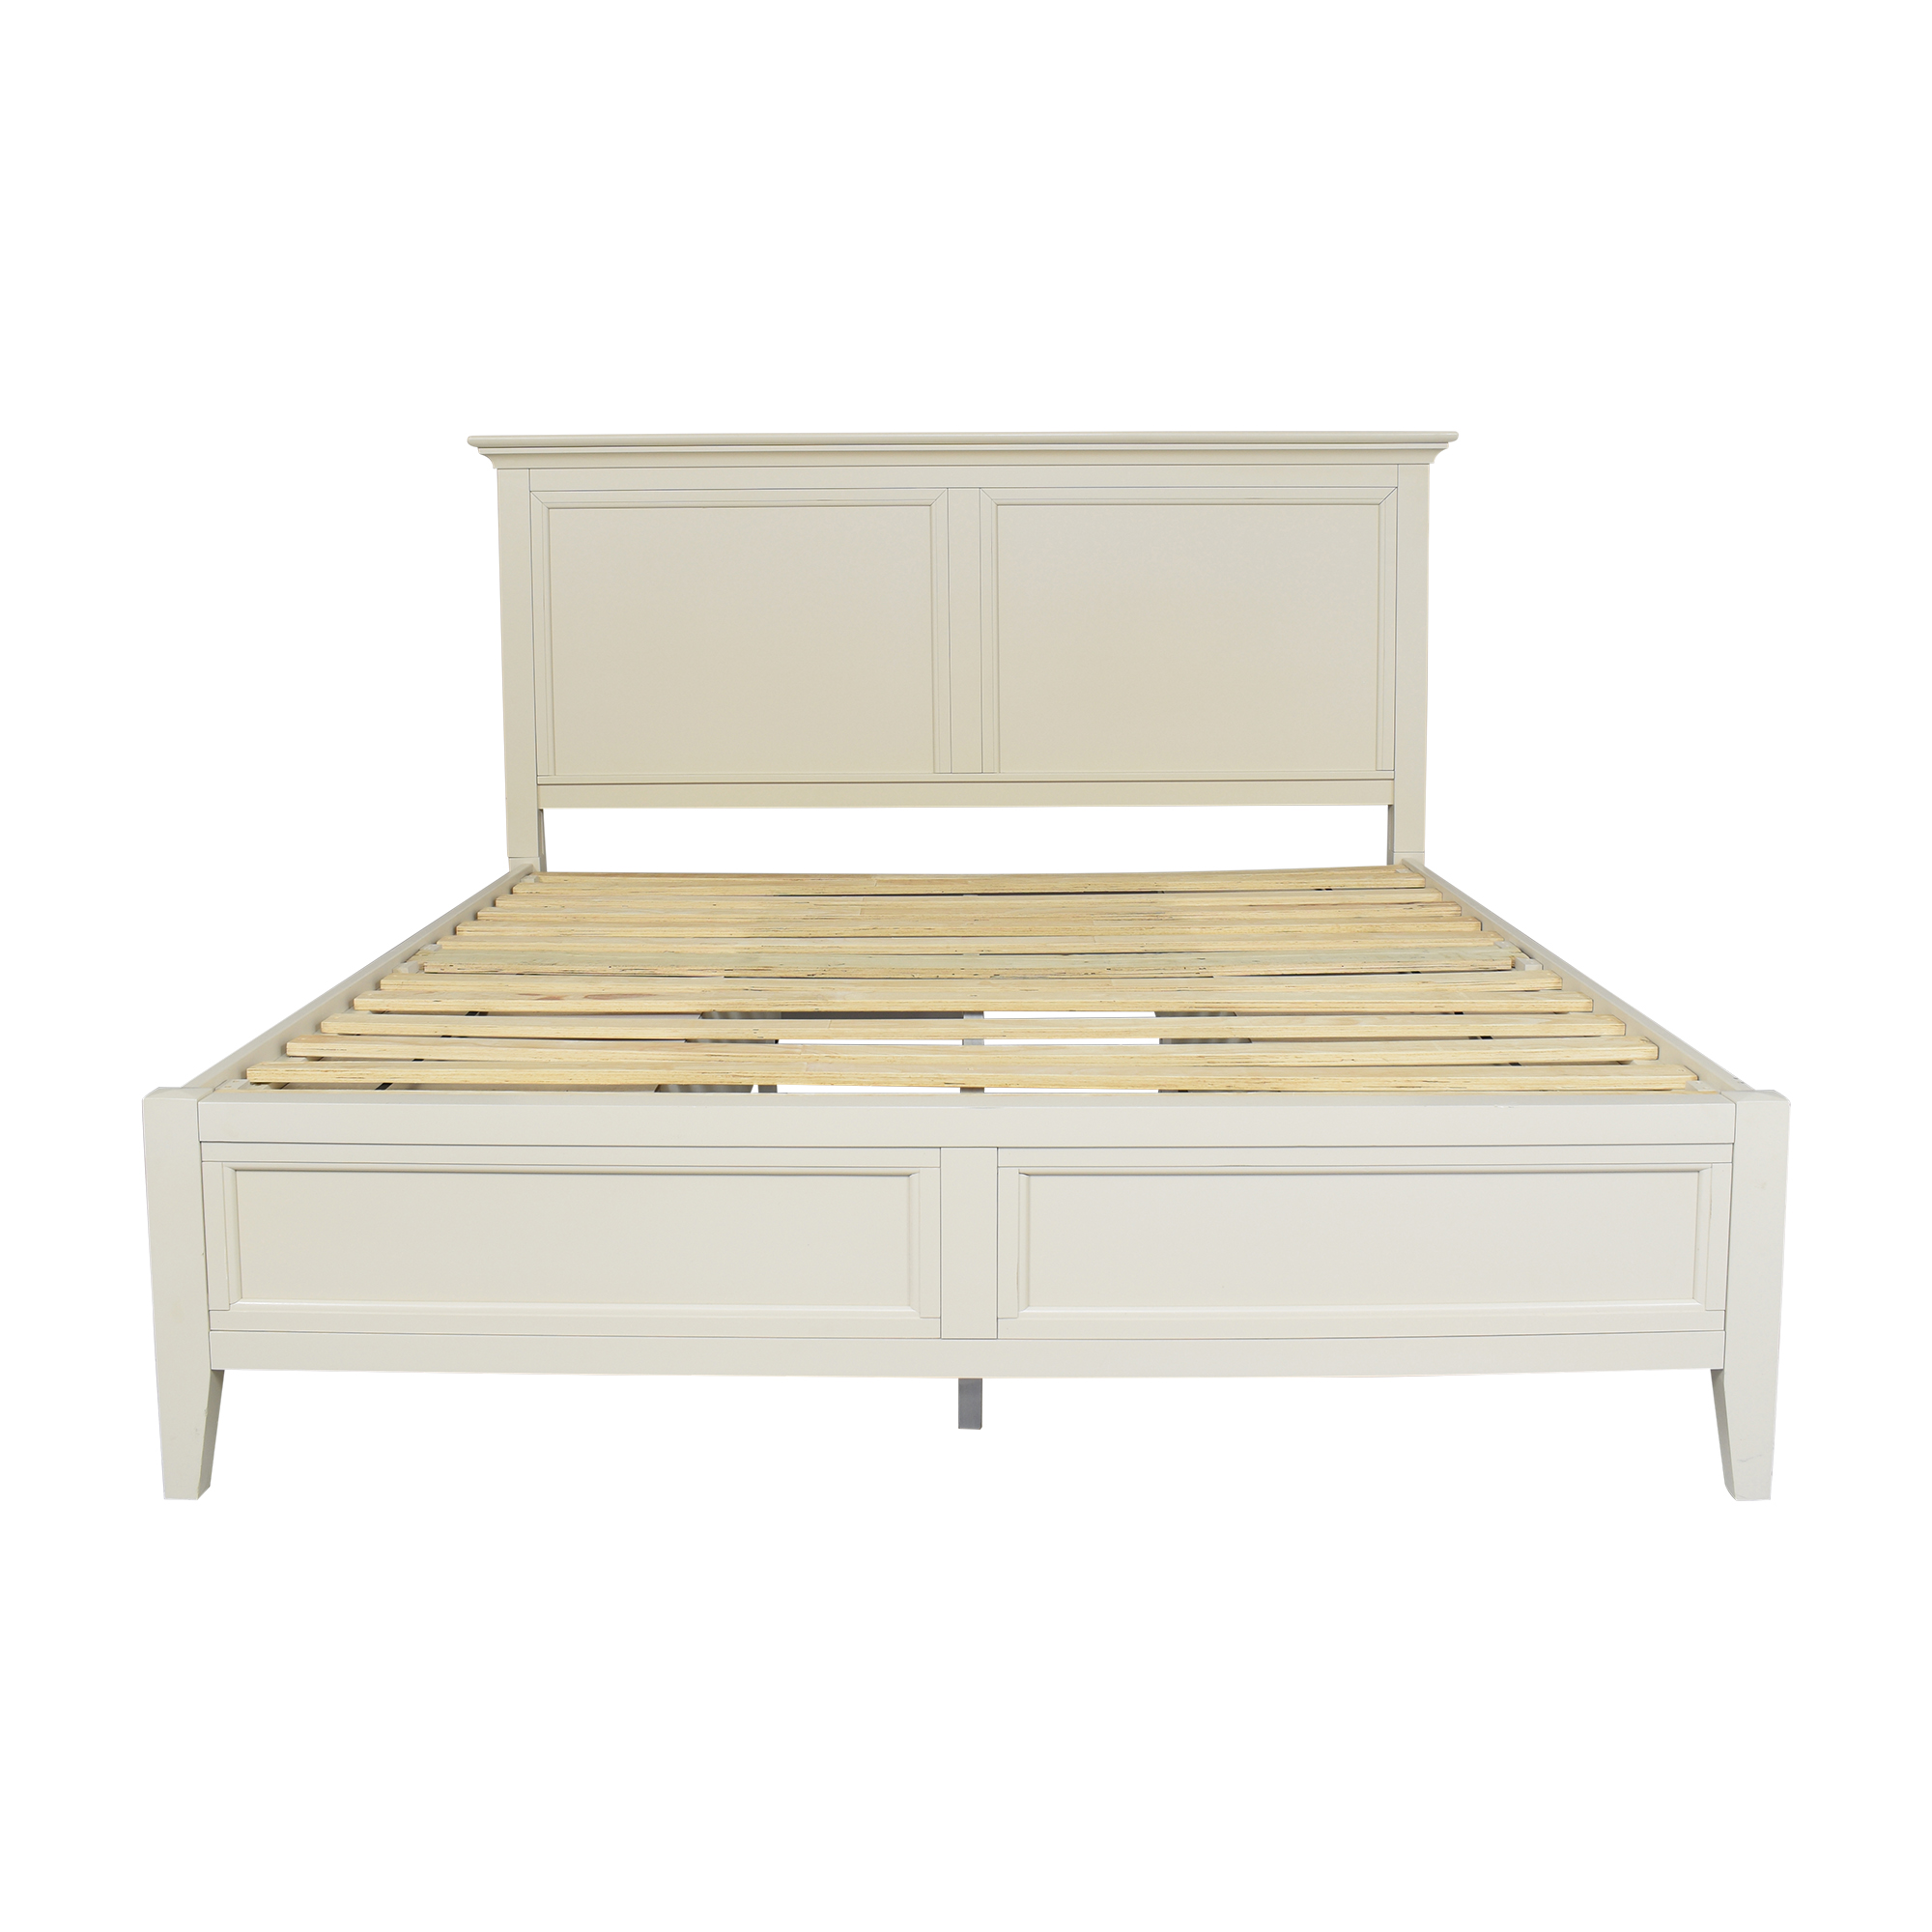 Macy's Macy's Sanibel King Storage Bed Beds